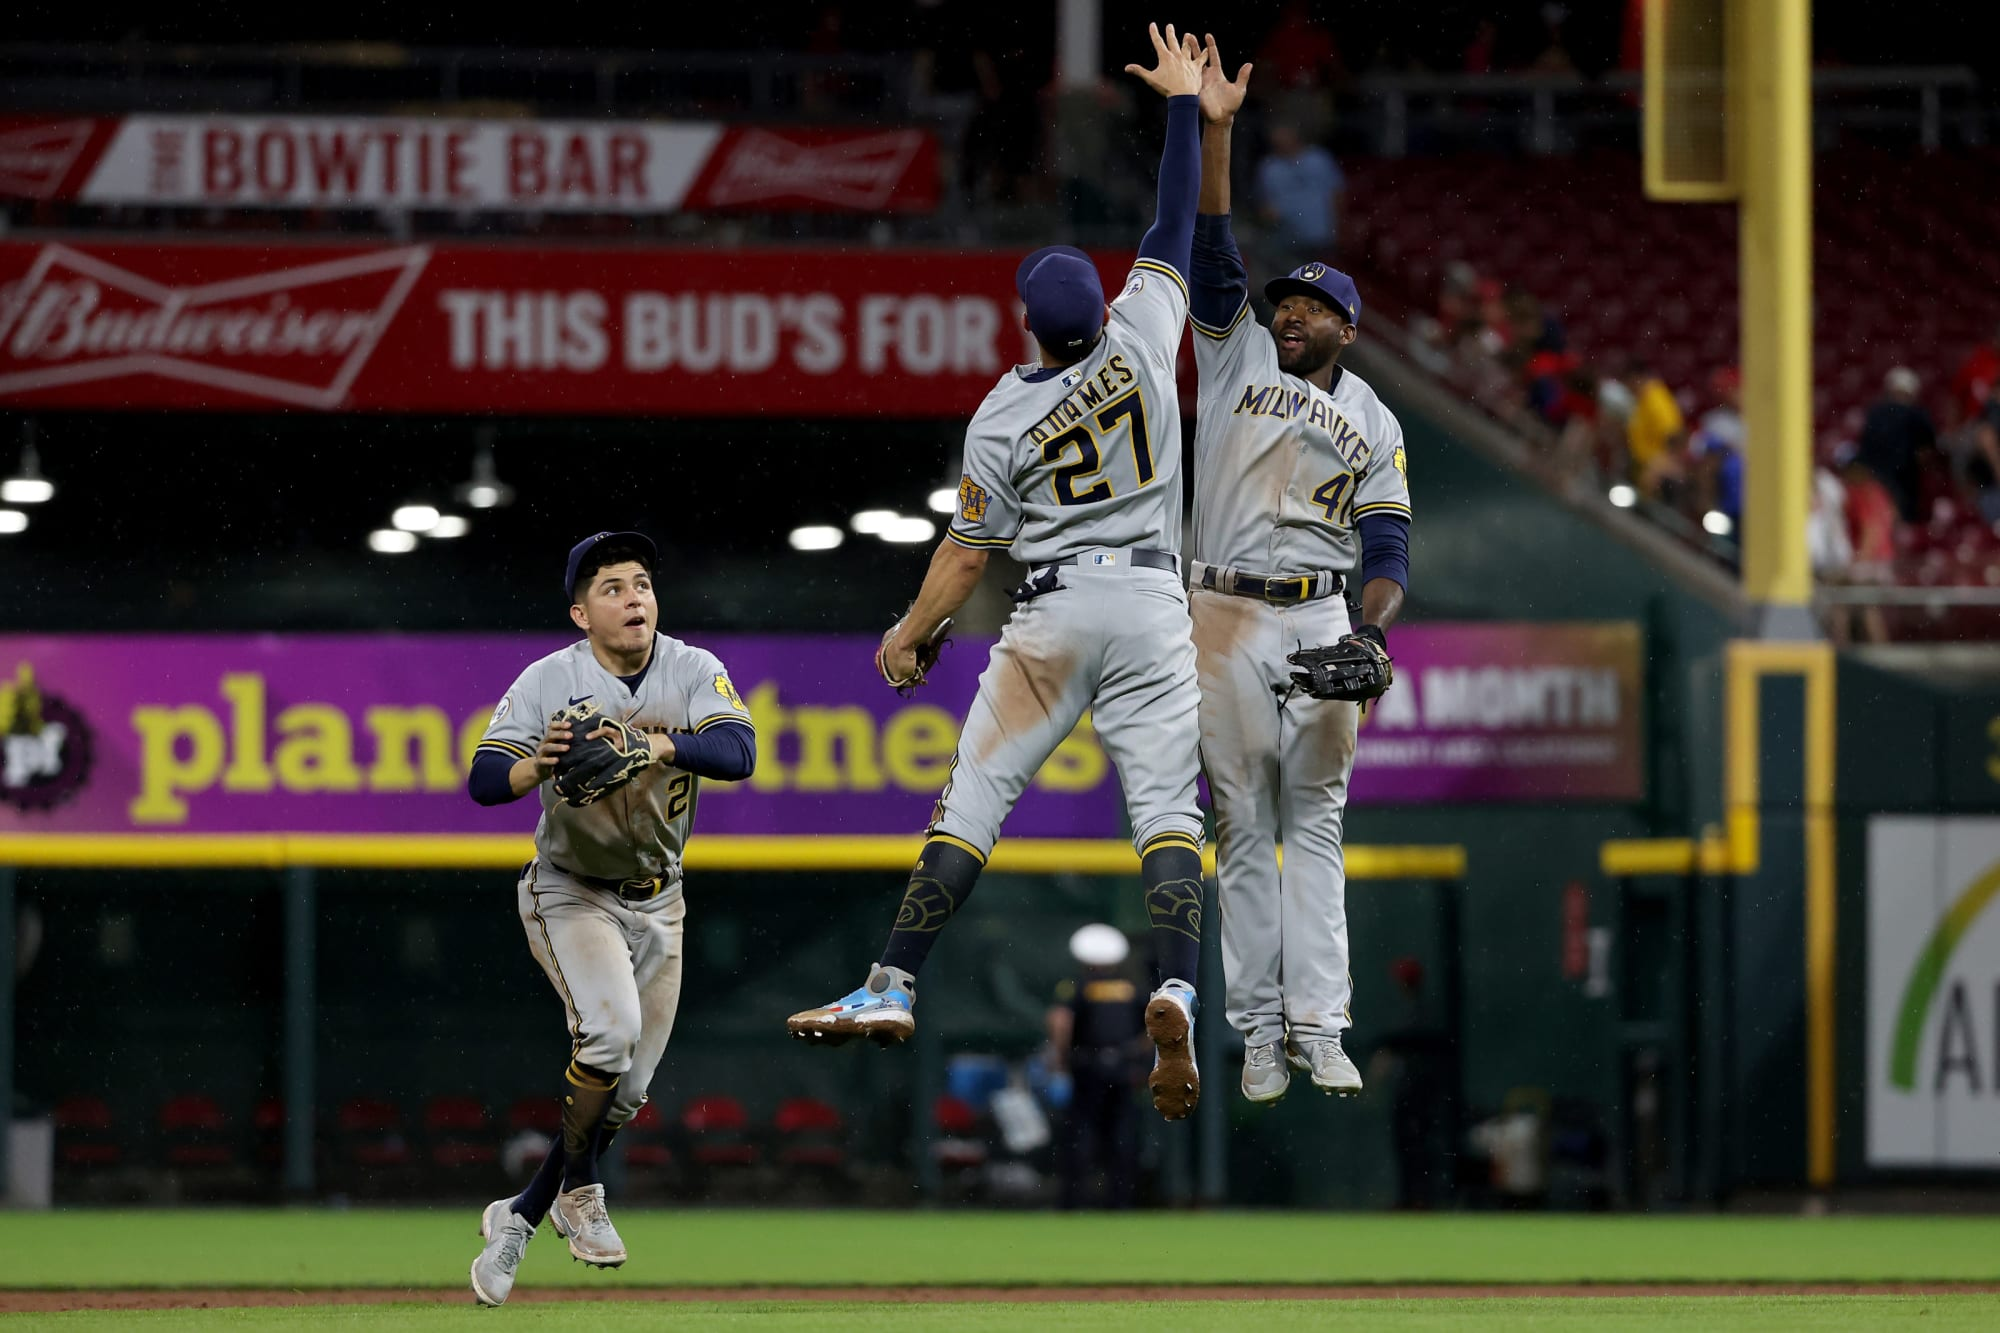 Brewers: After 60 Games, How Does '21 Crew Compare To 2020 Brewers?